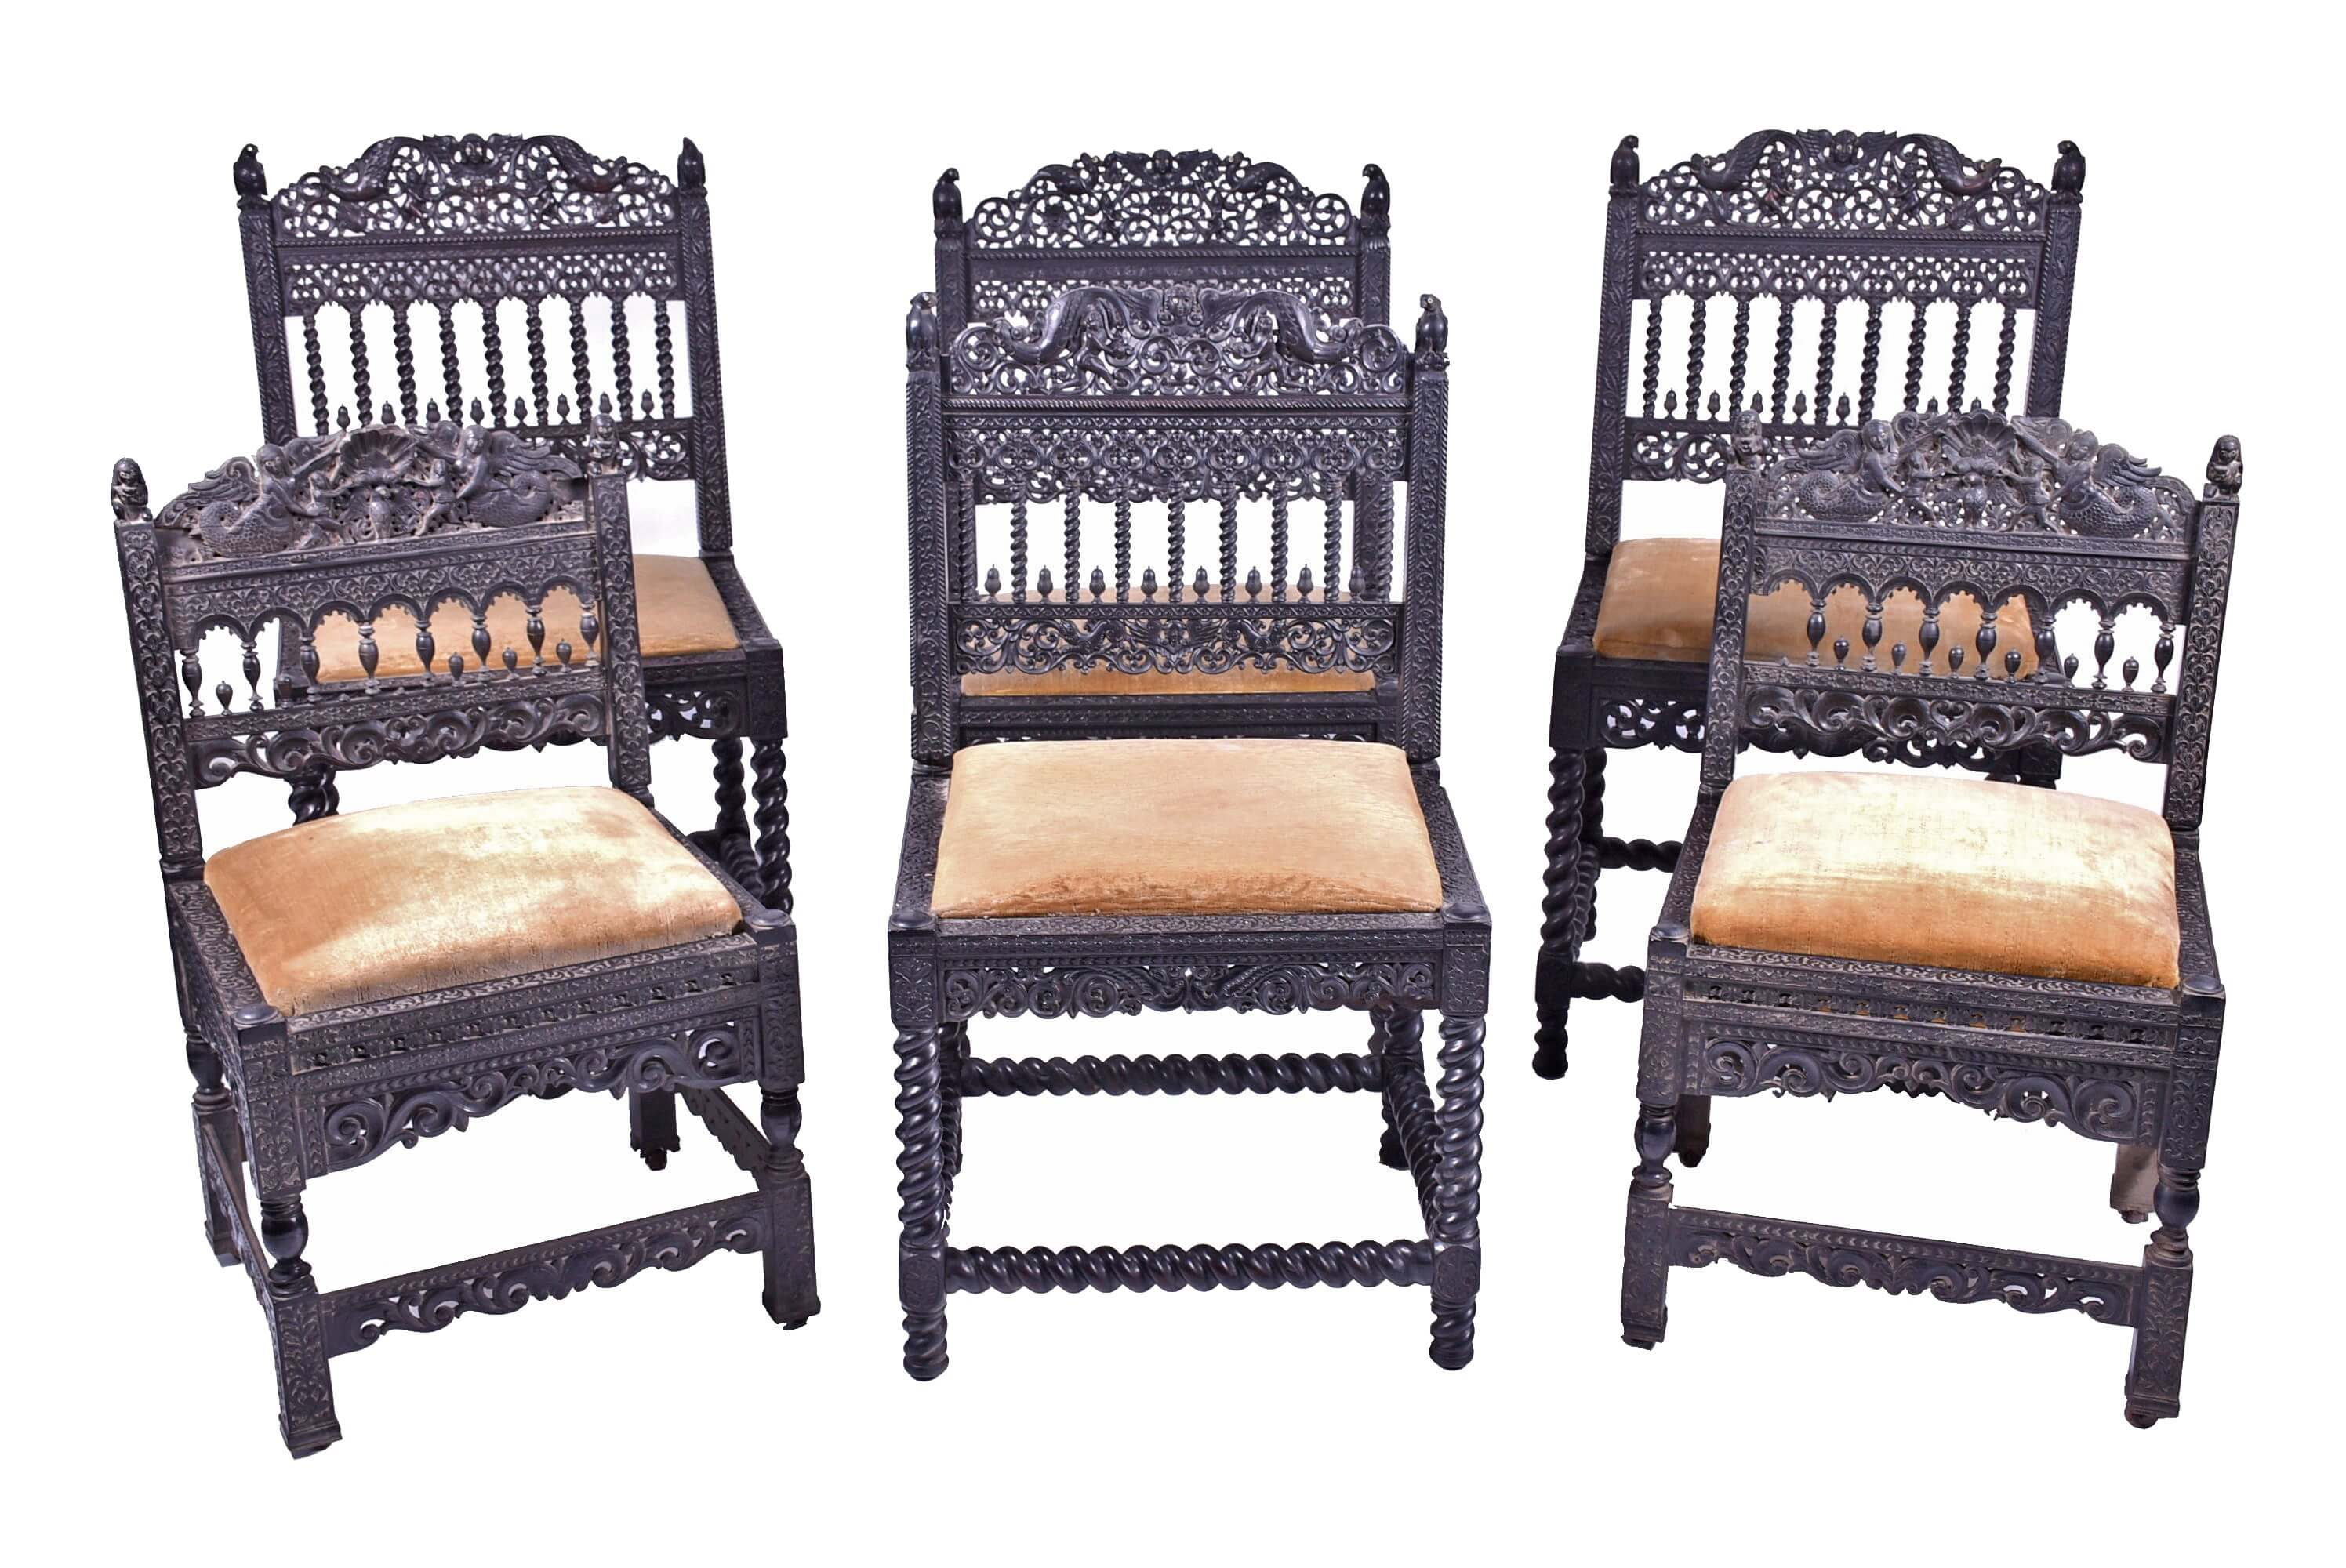 six colonial Anglo-Indian chairs early 19th century